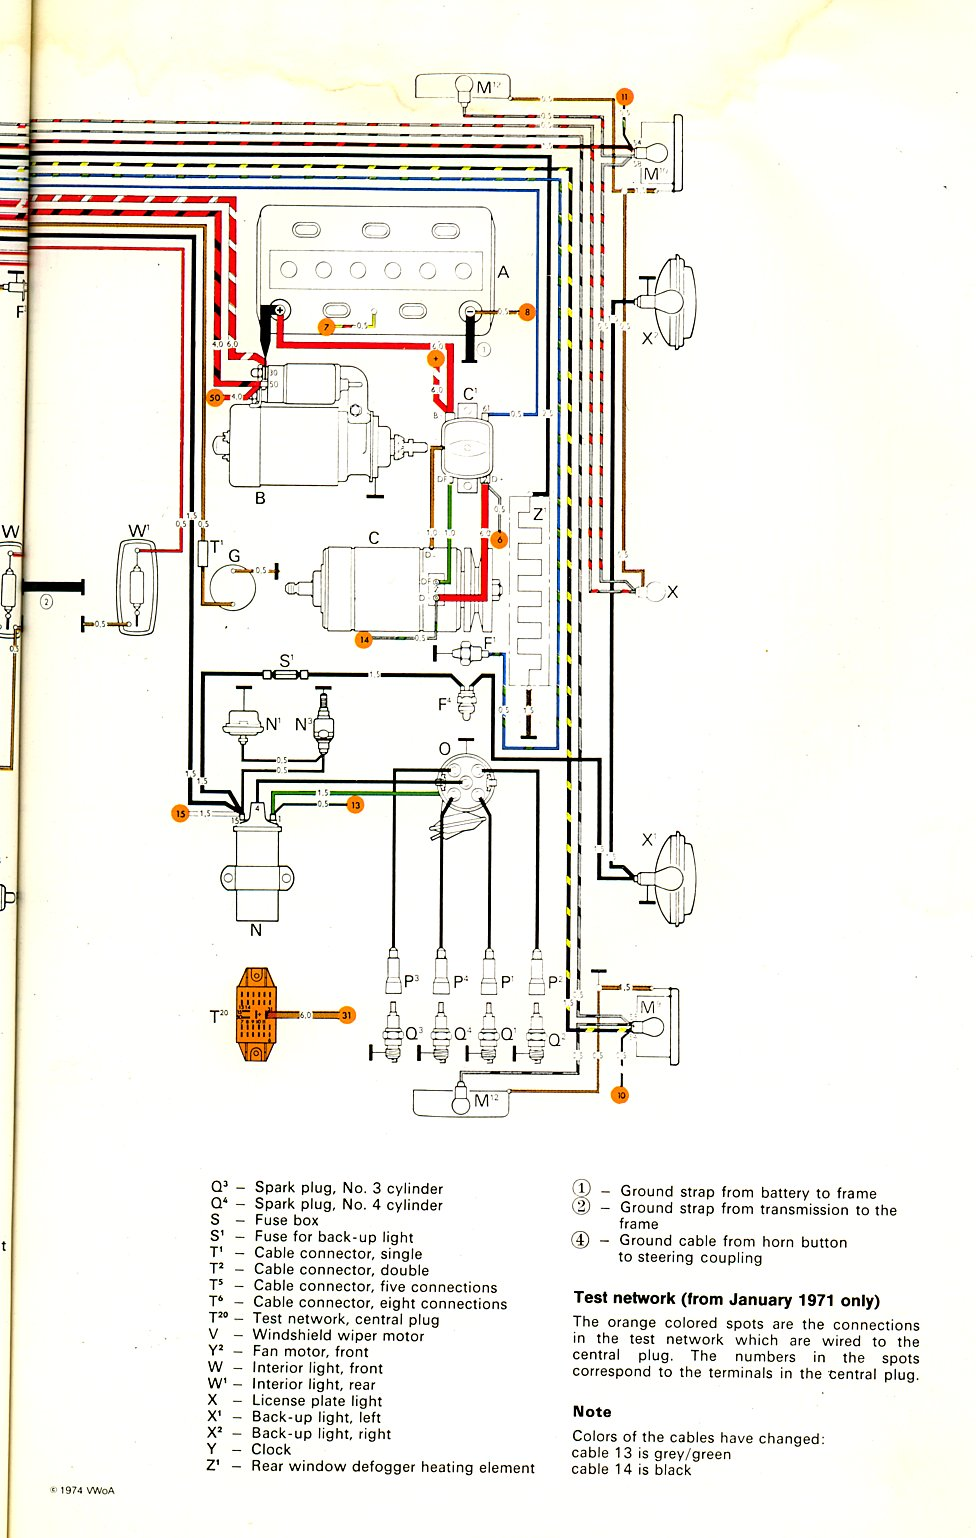 baybus_71b thesamba com type 2 wiring diagrams 1986 Corvette Fuse Box Diagram at honlapkeszites.co